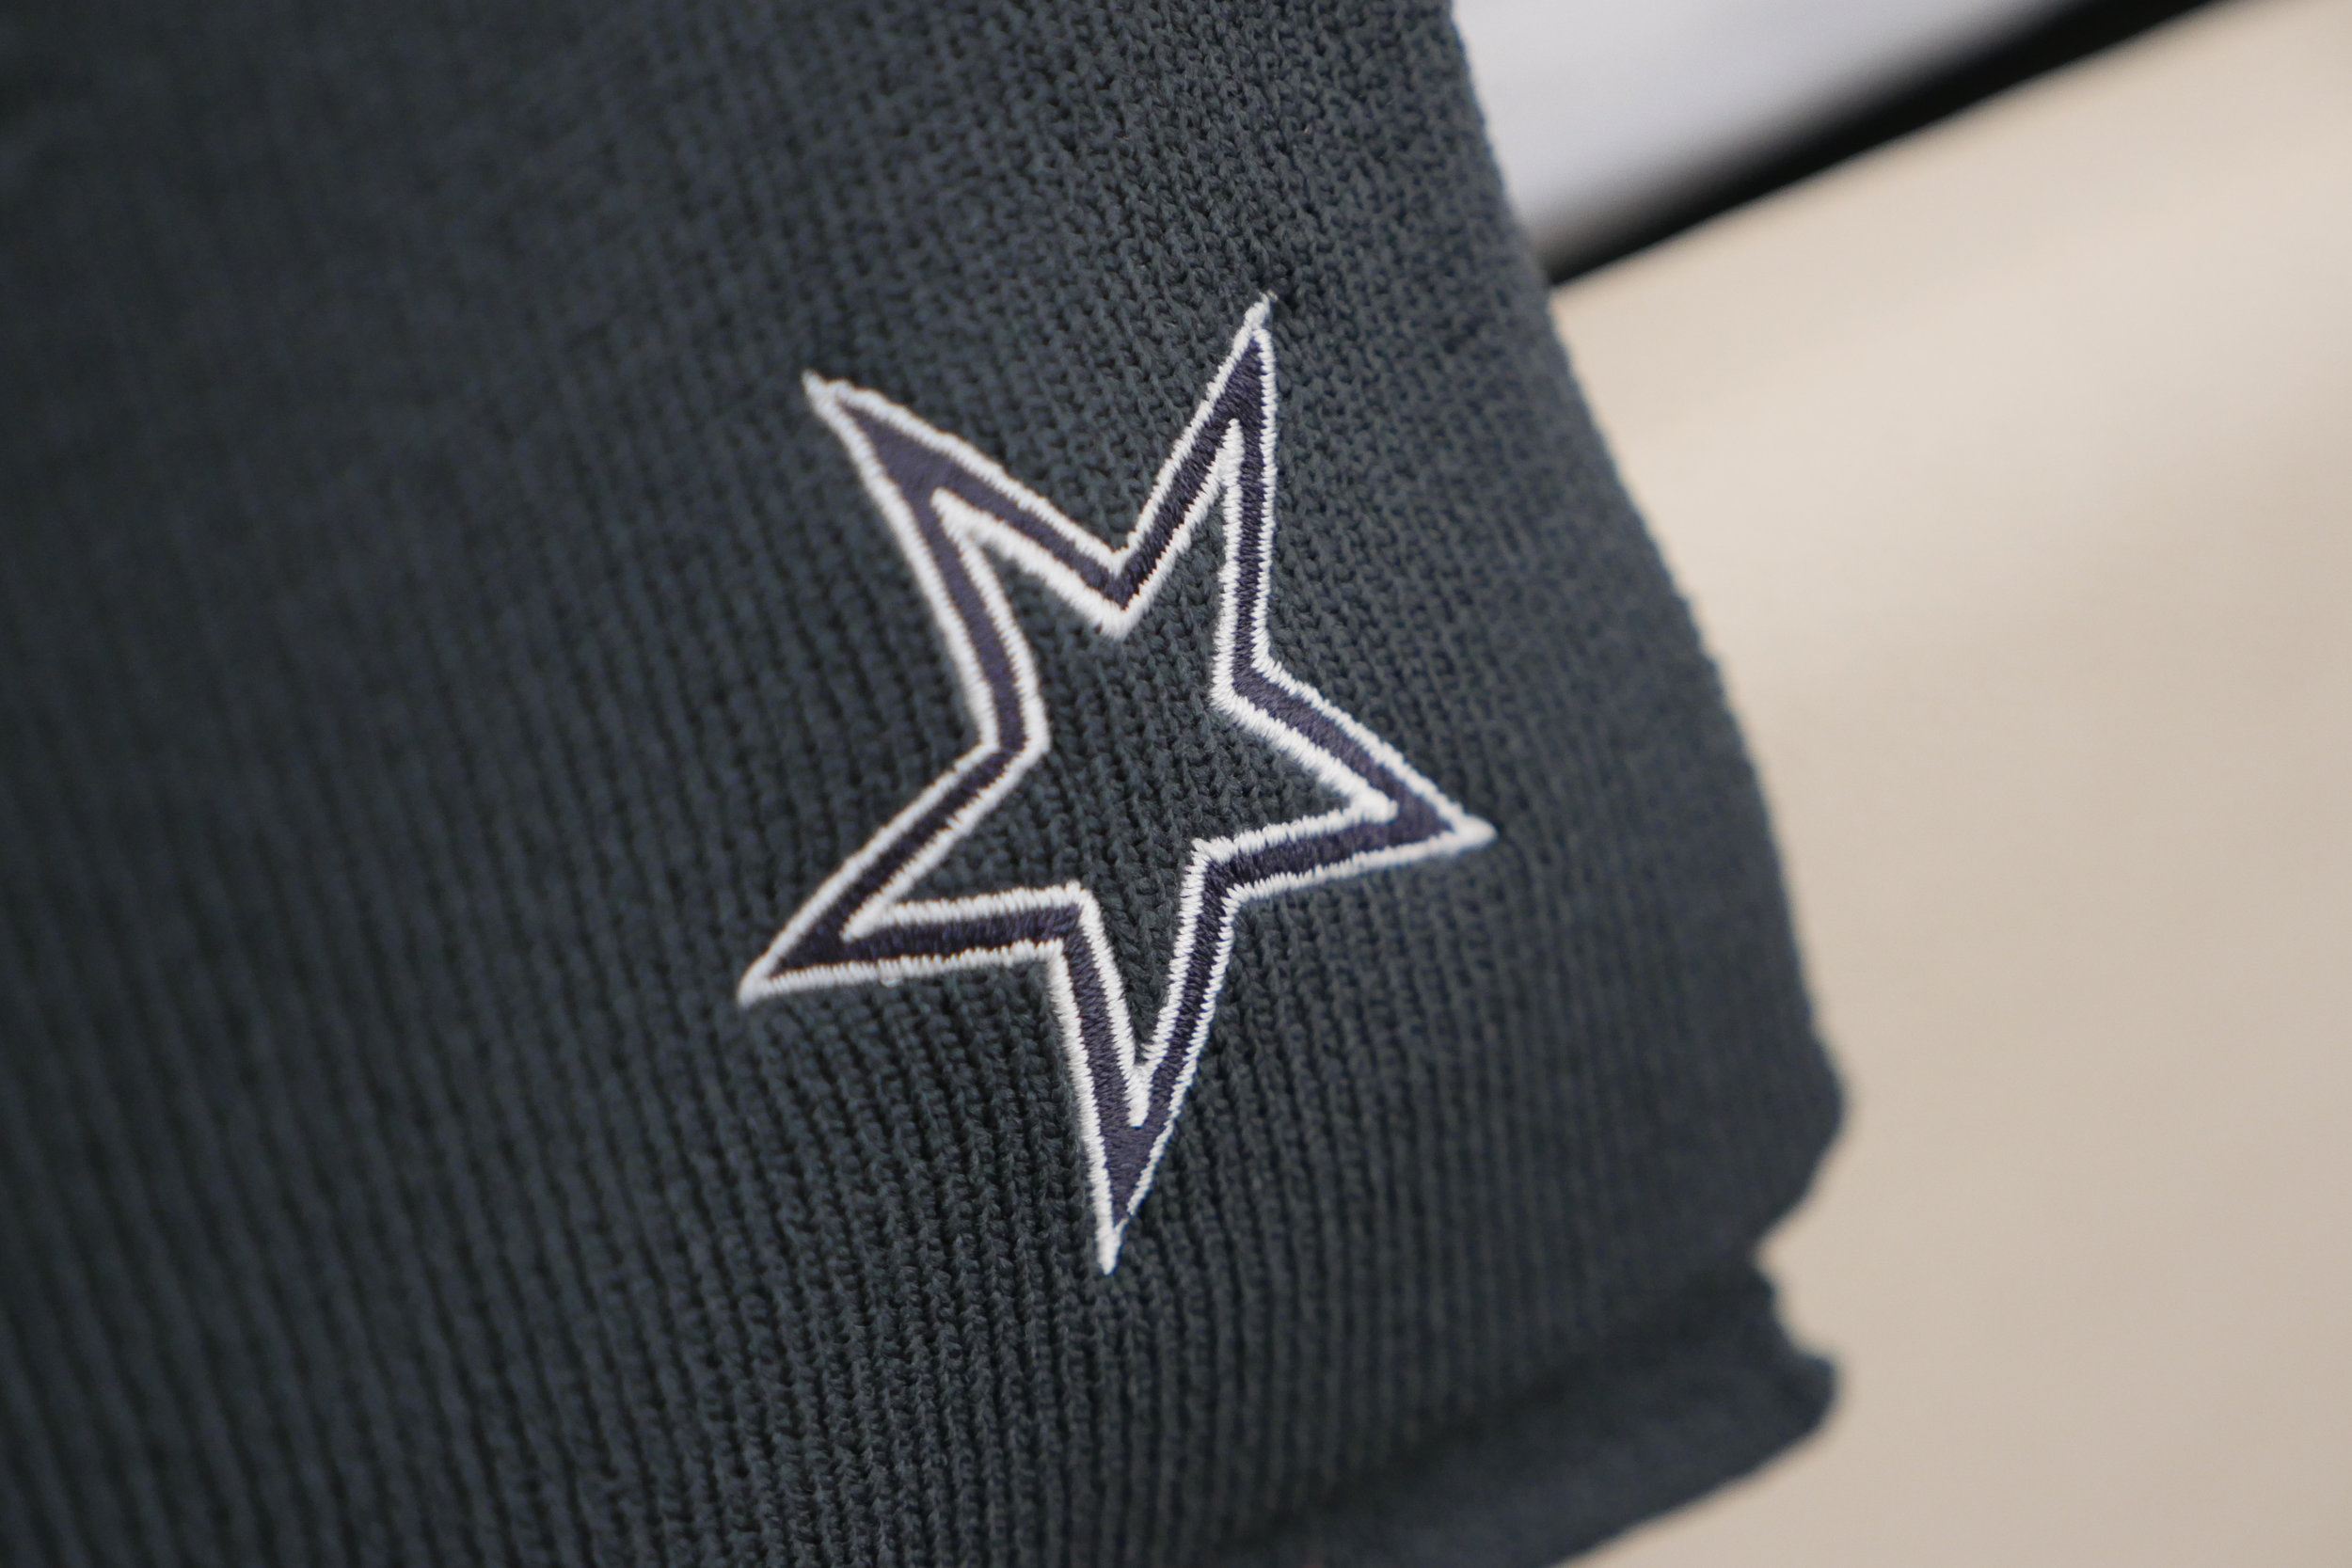 On each bed is a throw with an embroidered Dallas Cowboys star on the corner, by Wilson Associates. The throw is available for purchase in the retail shop.